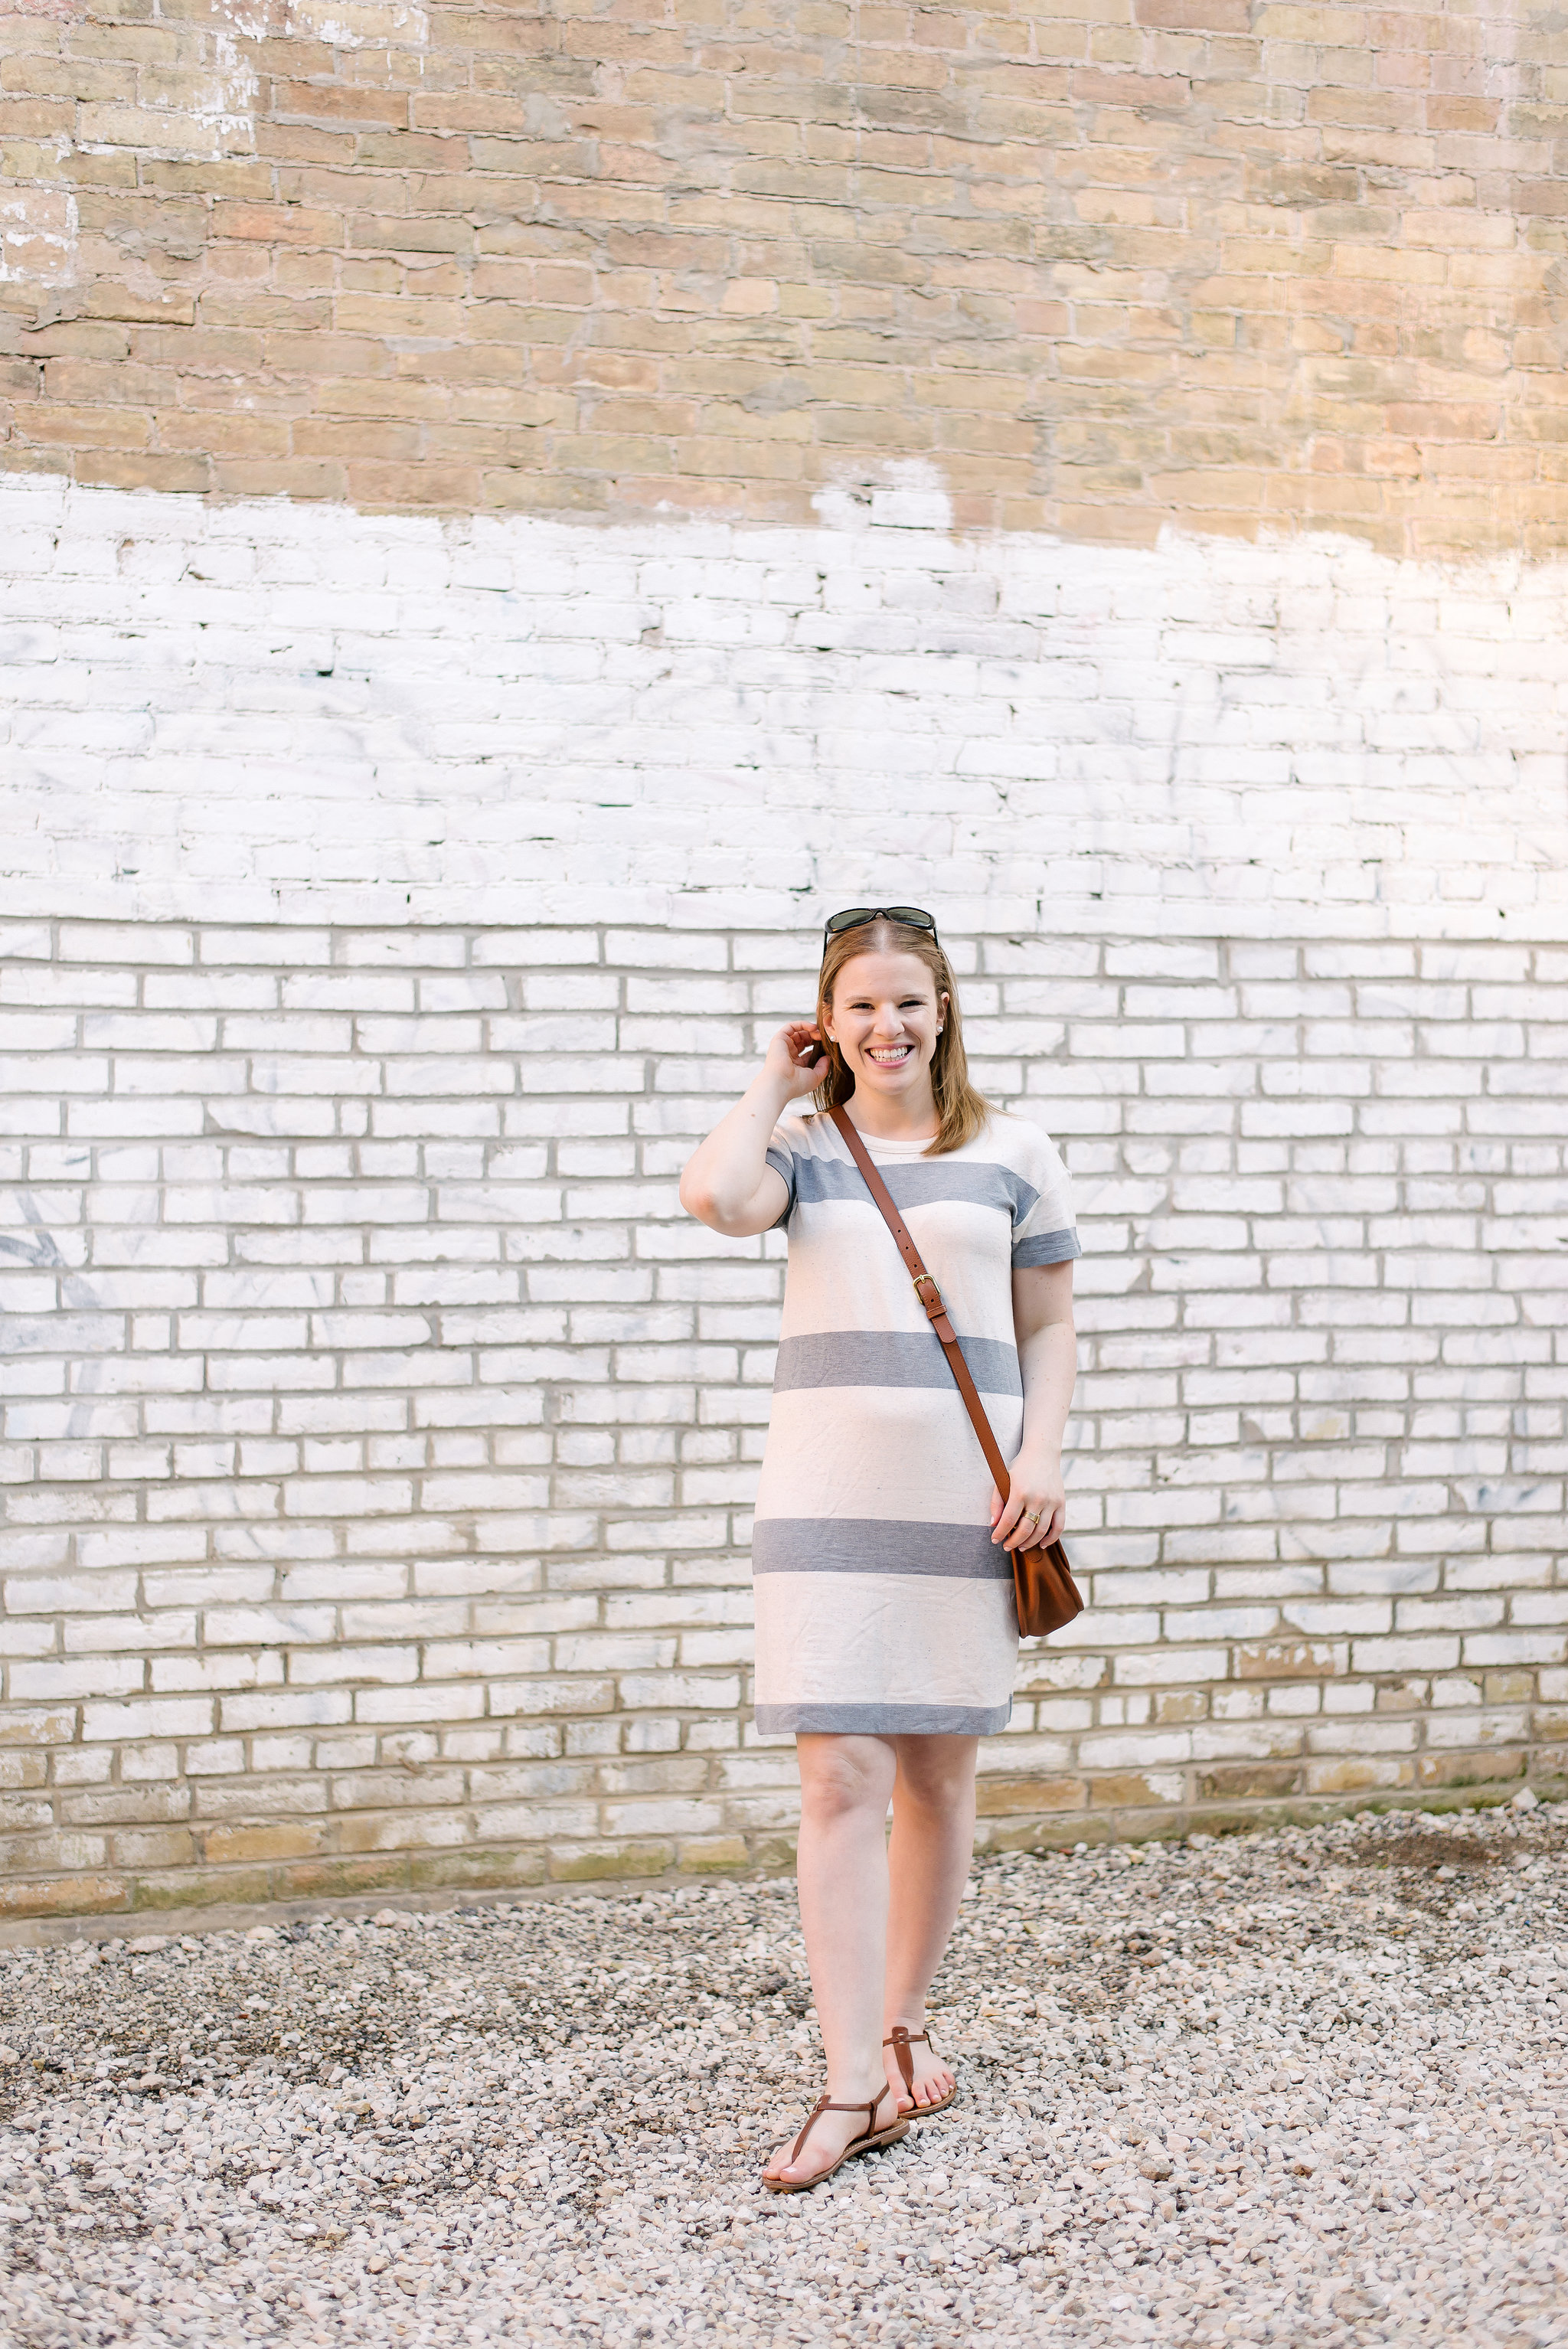 The Striped Tee Dress | Something Good, @danaerinw , fashion, style, summer